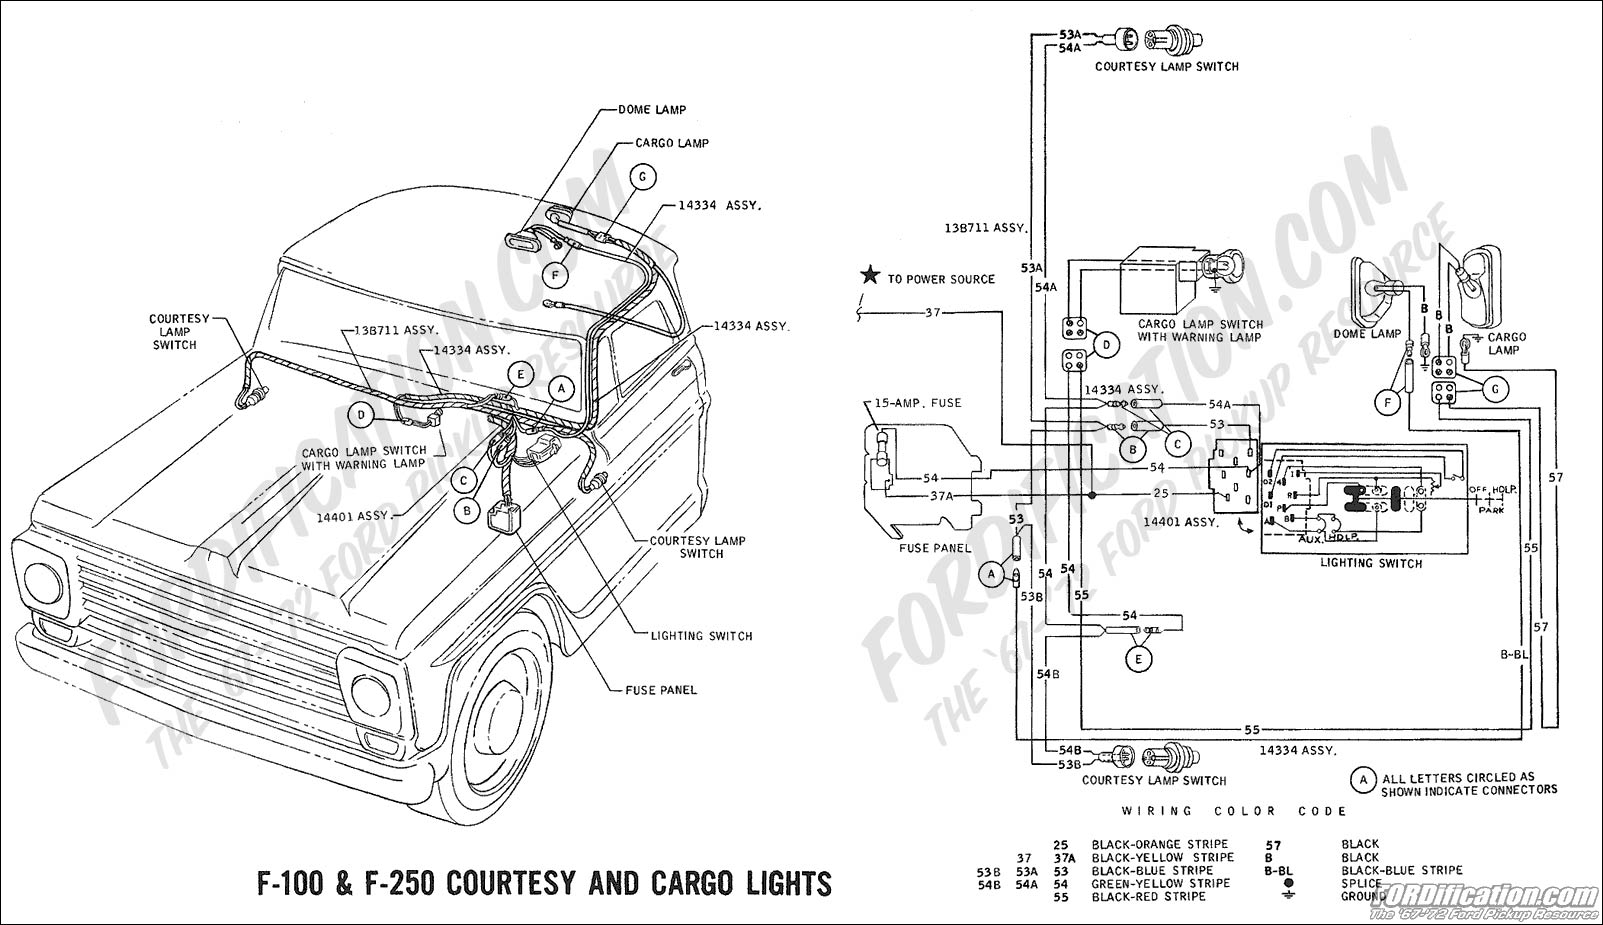 1969 F-100, F-250 courtesy and cargo lights